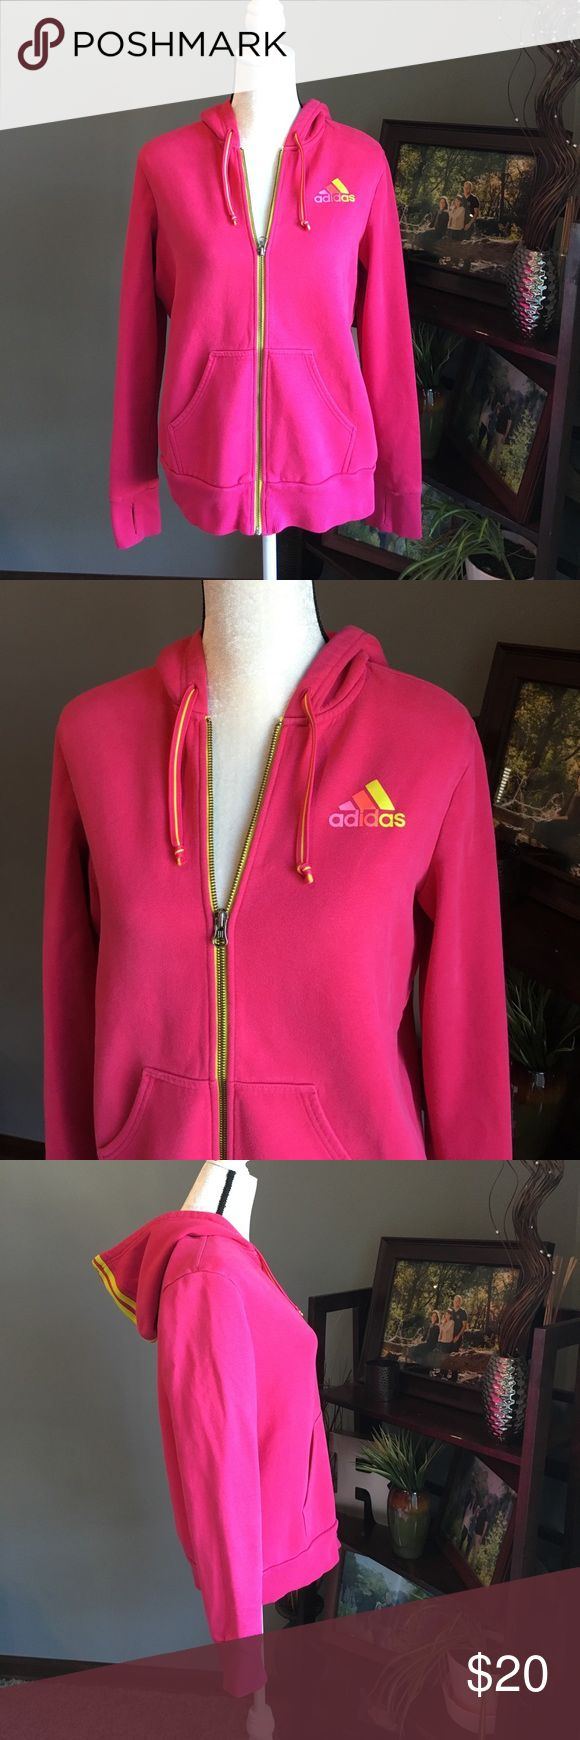 "ADIDAS Zip Up Hoodie Adidas Zip Up hoodie.  Size L. Pink with neon yellow trim.  Adidas logo on chest is pink, orange, and yellow.  Hood has 3 yellow Adidas stripes.  There is a small stain on the hood (shown in pictures) but otherwise this is in great shape.  Cuffs have thumb holes. Very comfortable! Made of 70% cotton and 30% polyester.  Measures about 26"" from shoulder to bottom hem and about 22"" across the chest laying flat unstretched. Offers and bundles welcome! adidas Tops Sweatshirts…"